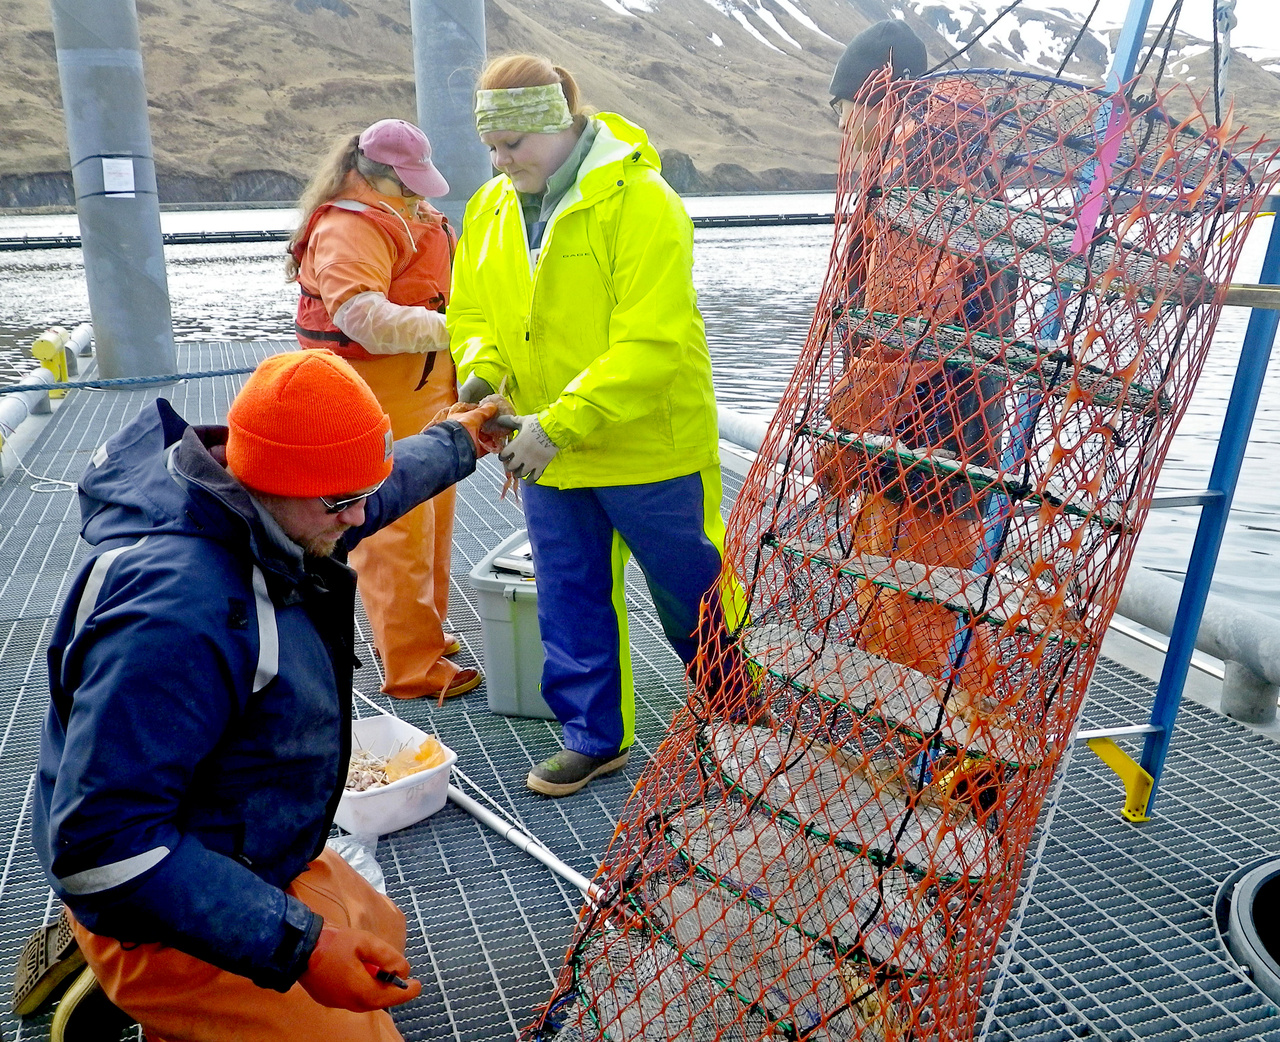 Jeff Cox (Bering Sea Fisheries Research Foundation) (left), Pam Jensen (NOAA Fisheries), Sarah Johnson (Alaska Department of Fish and Game Observer), and Nick Ellickson (Alaska Department of Fish and Game Observer) measuring molted crabs. Jeff, Pam, Sarah and Nick have retrieved a lantern net and have hung it on a ladder for easy access at the dock. Jeff has removed a new-shelled crab from its compartment and is handing it to Sarah for measurement.